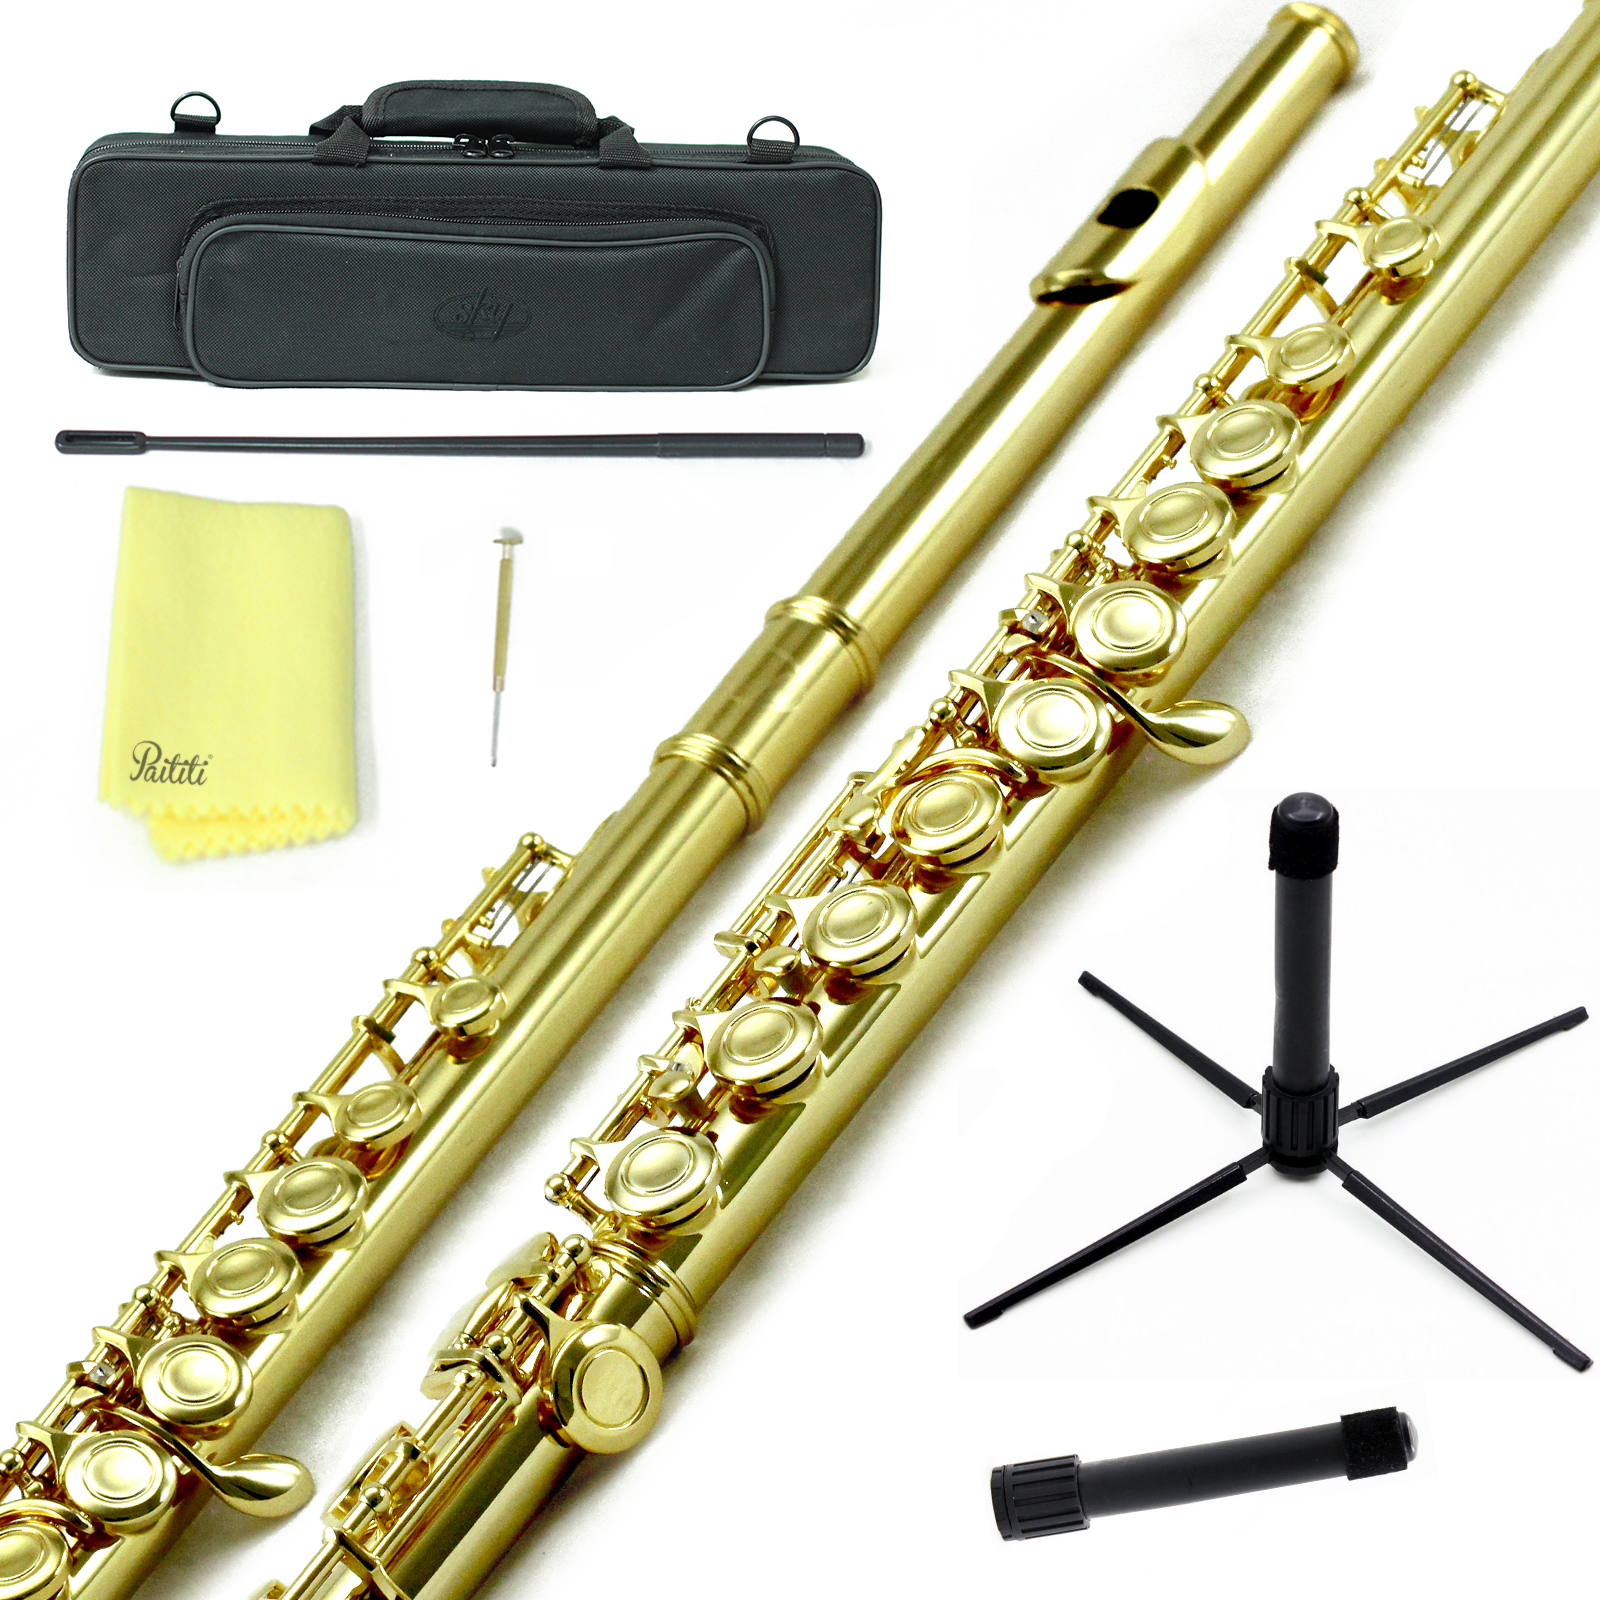 Sky Closed Hole C Flute with Lightweight Case, Cleaning Rod, Cloth, Joint Grease and Screw Driver - Gold